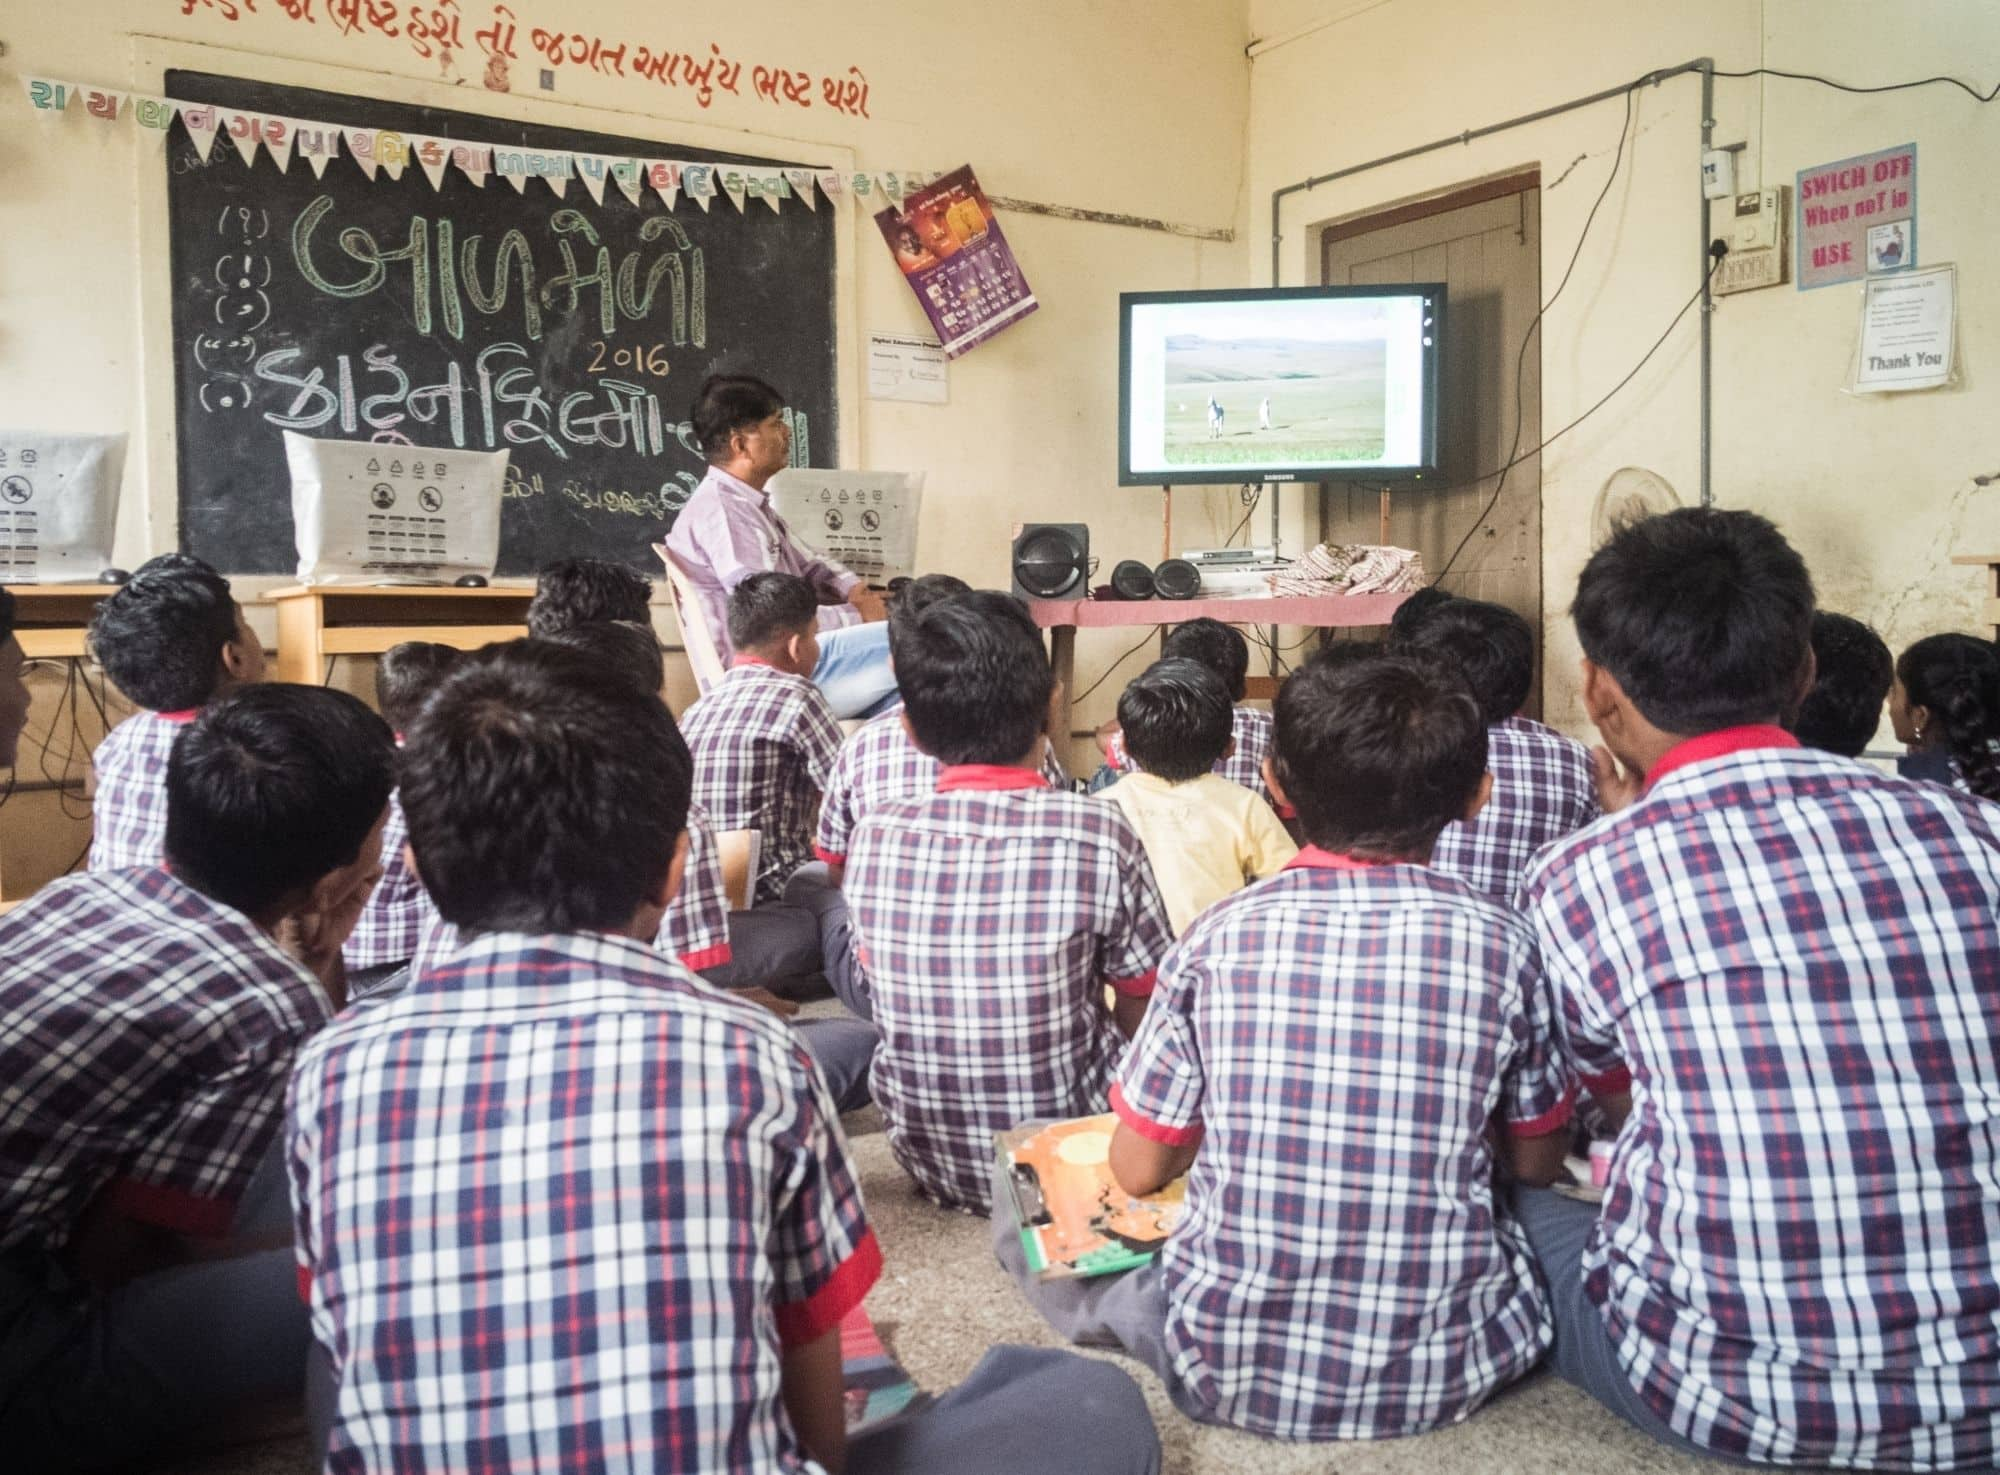 Gujarat Schools for Classes 9 and 11 to Start from Feb 1: Education Minister Bhupendrasinh Chudasama